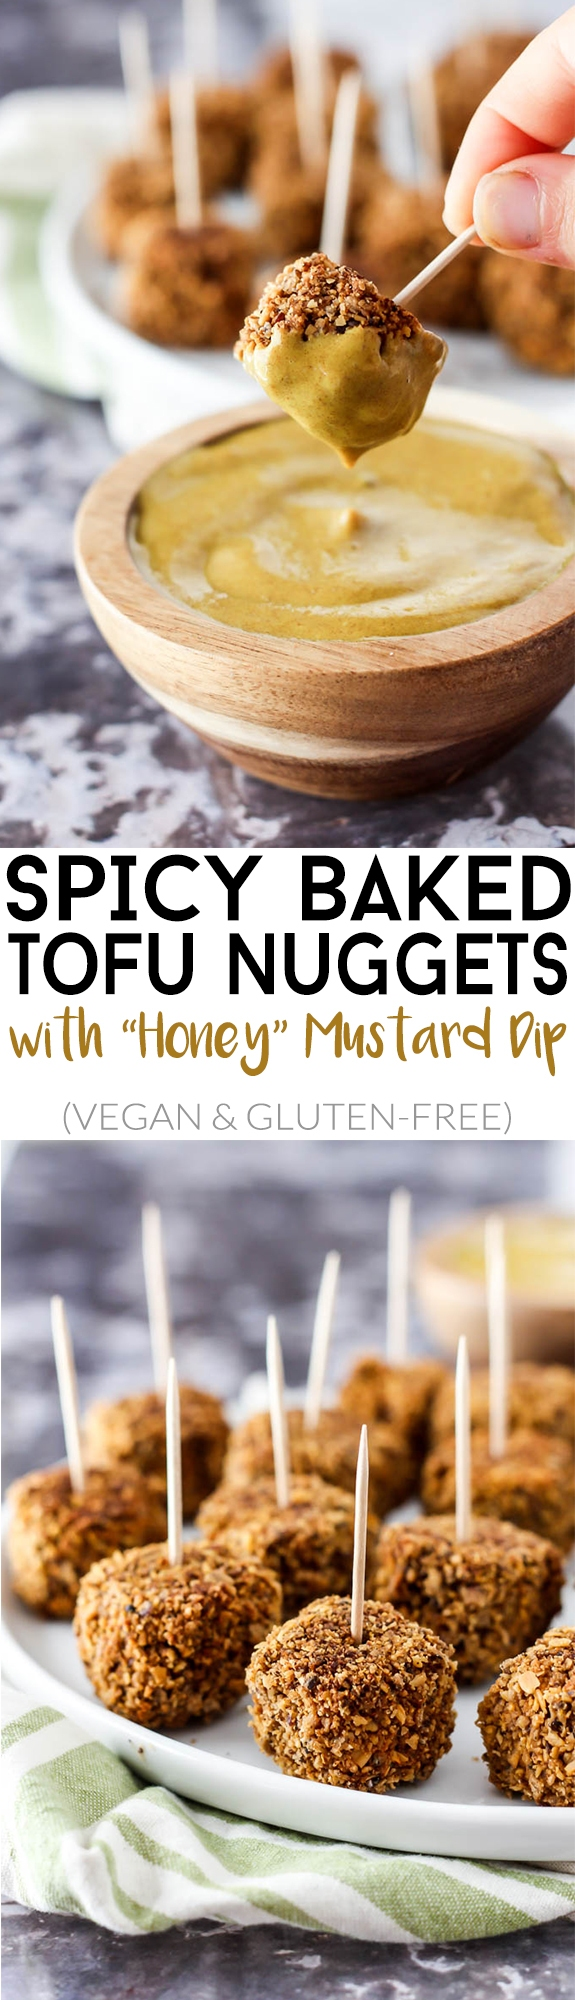 Crispy, bite-sized & perfectly spicy, these Baked Tofu Nuggets with ...